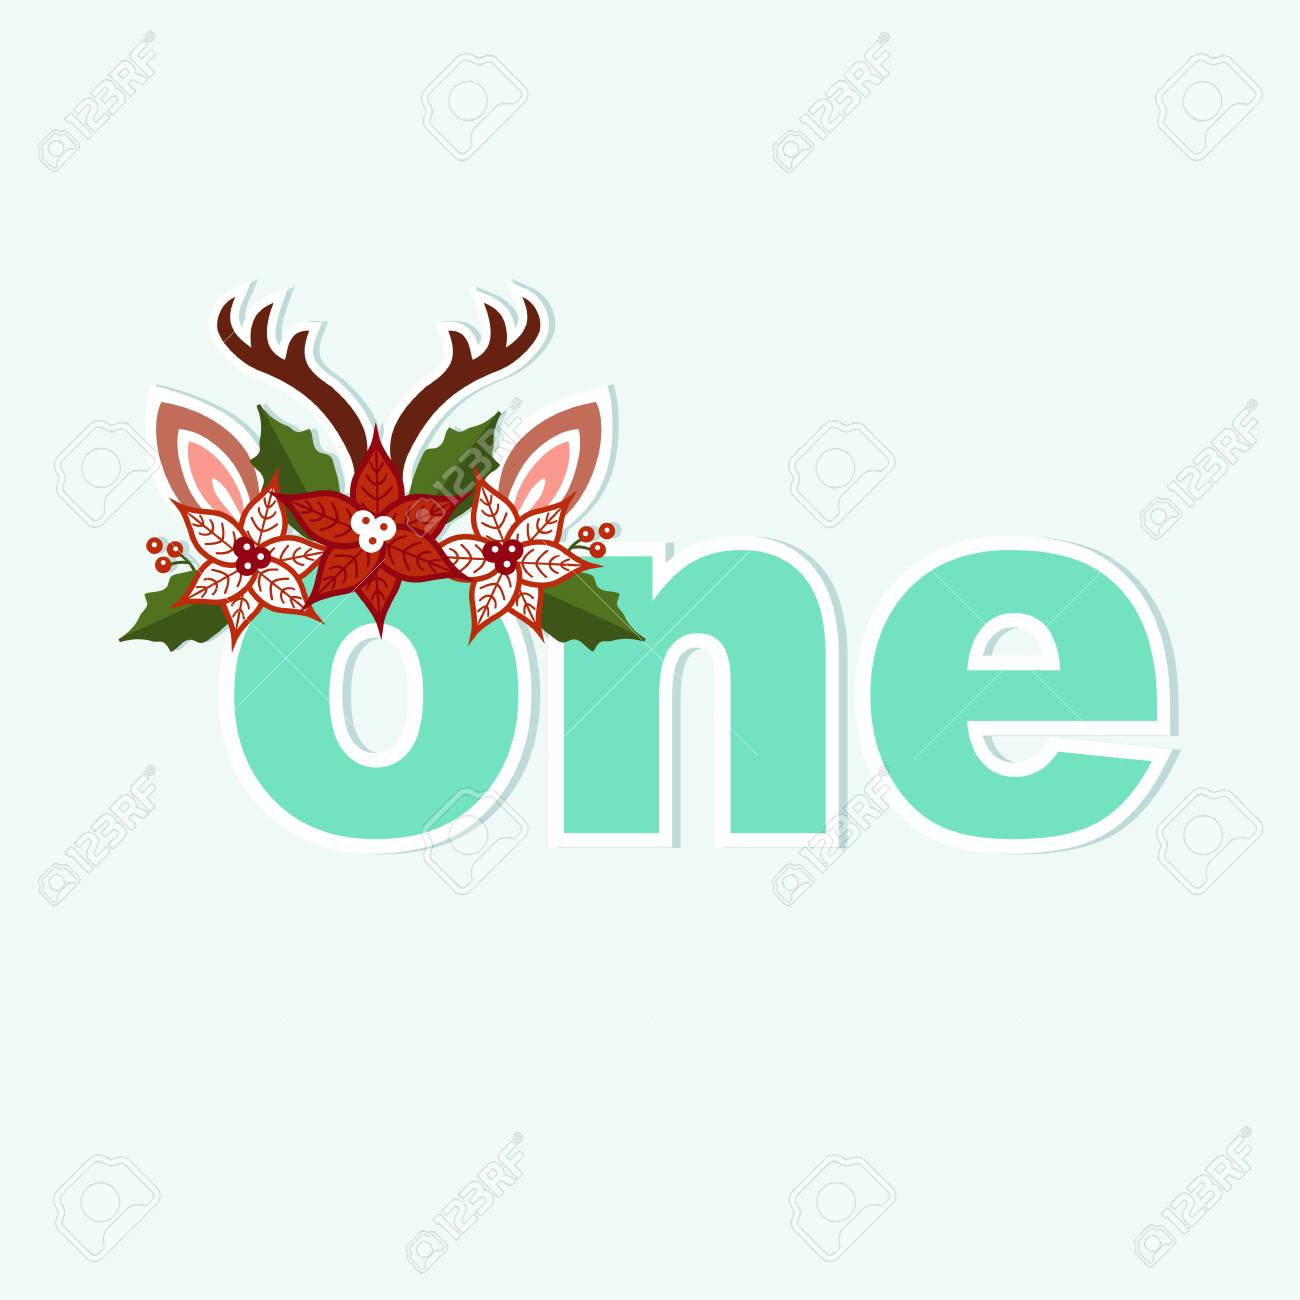 Vector Illustration One Deer With Antlers And Christmas Wreath